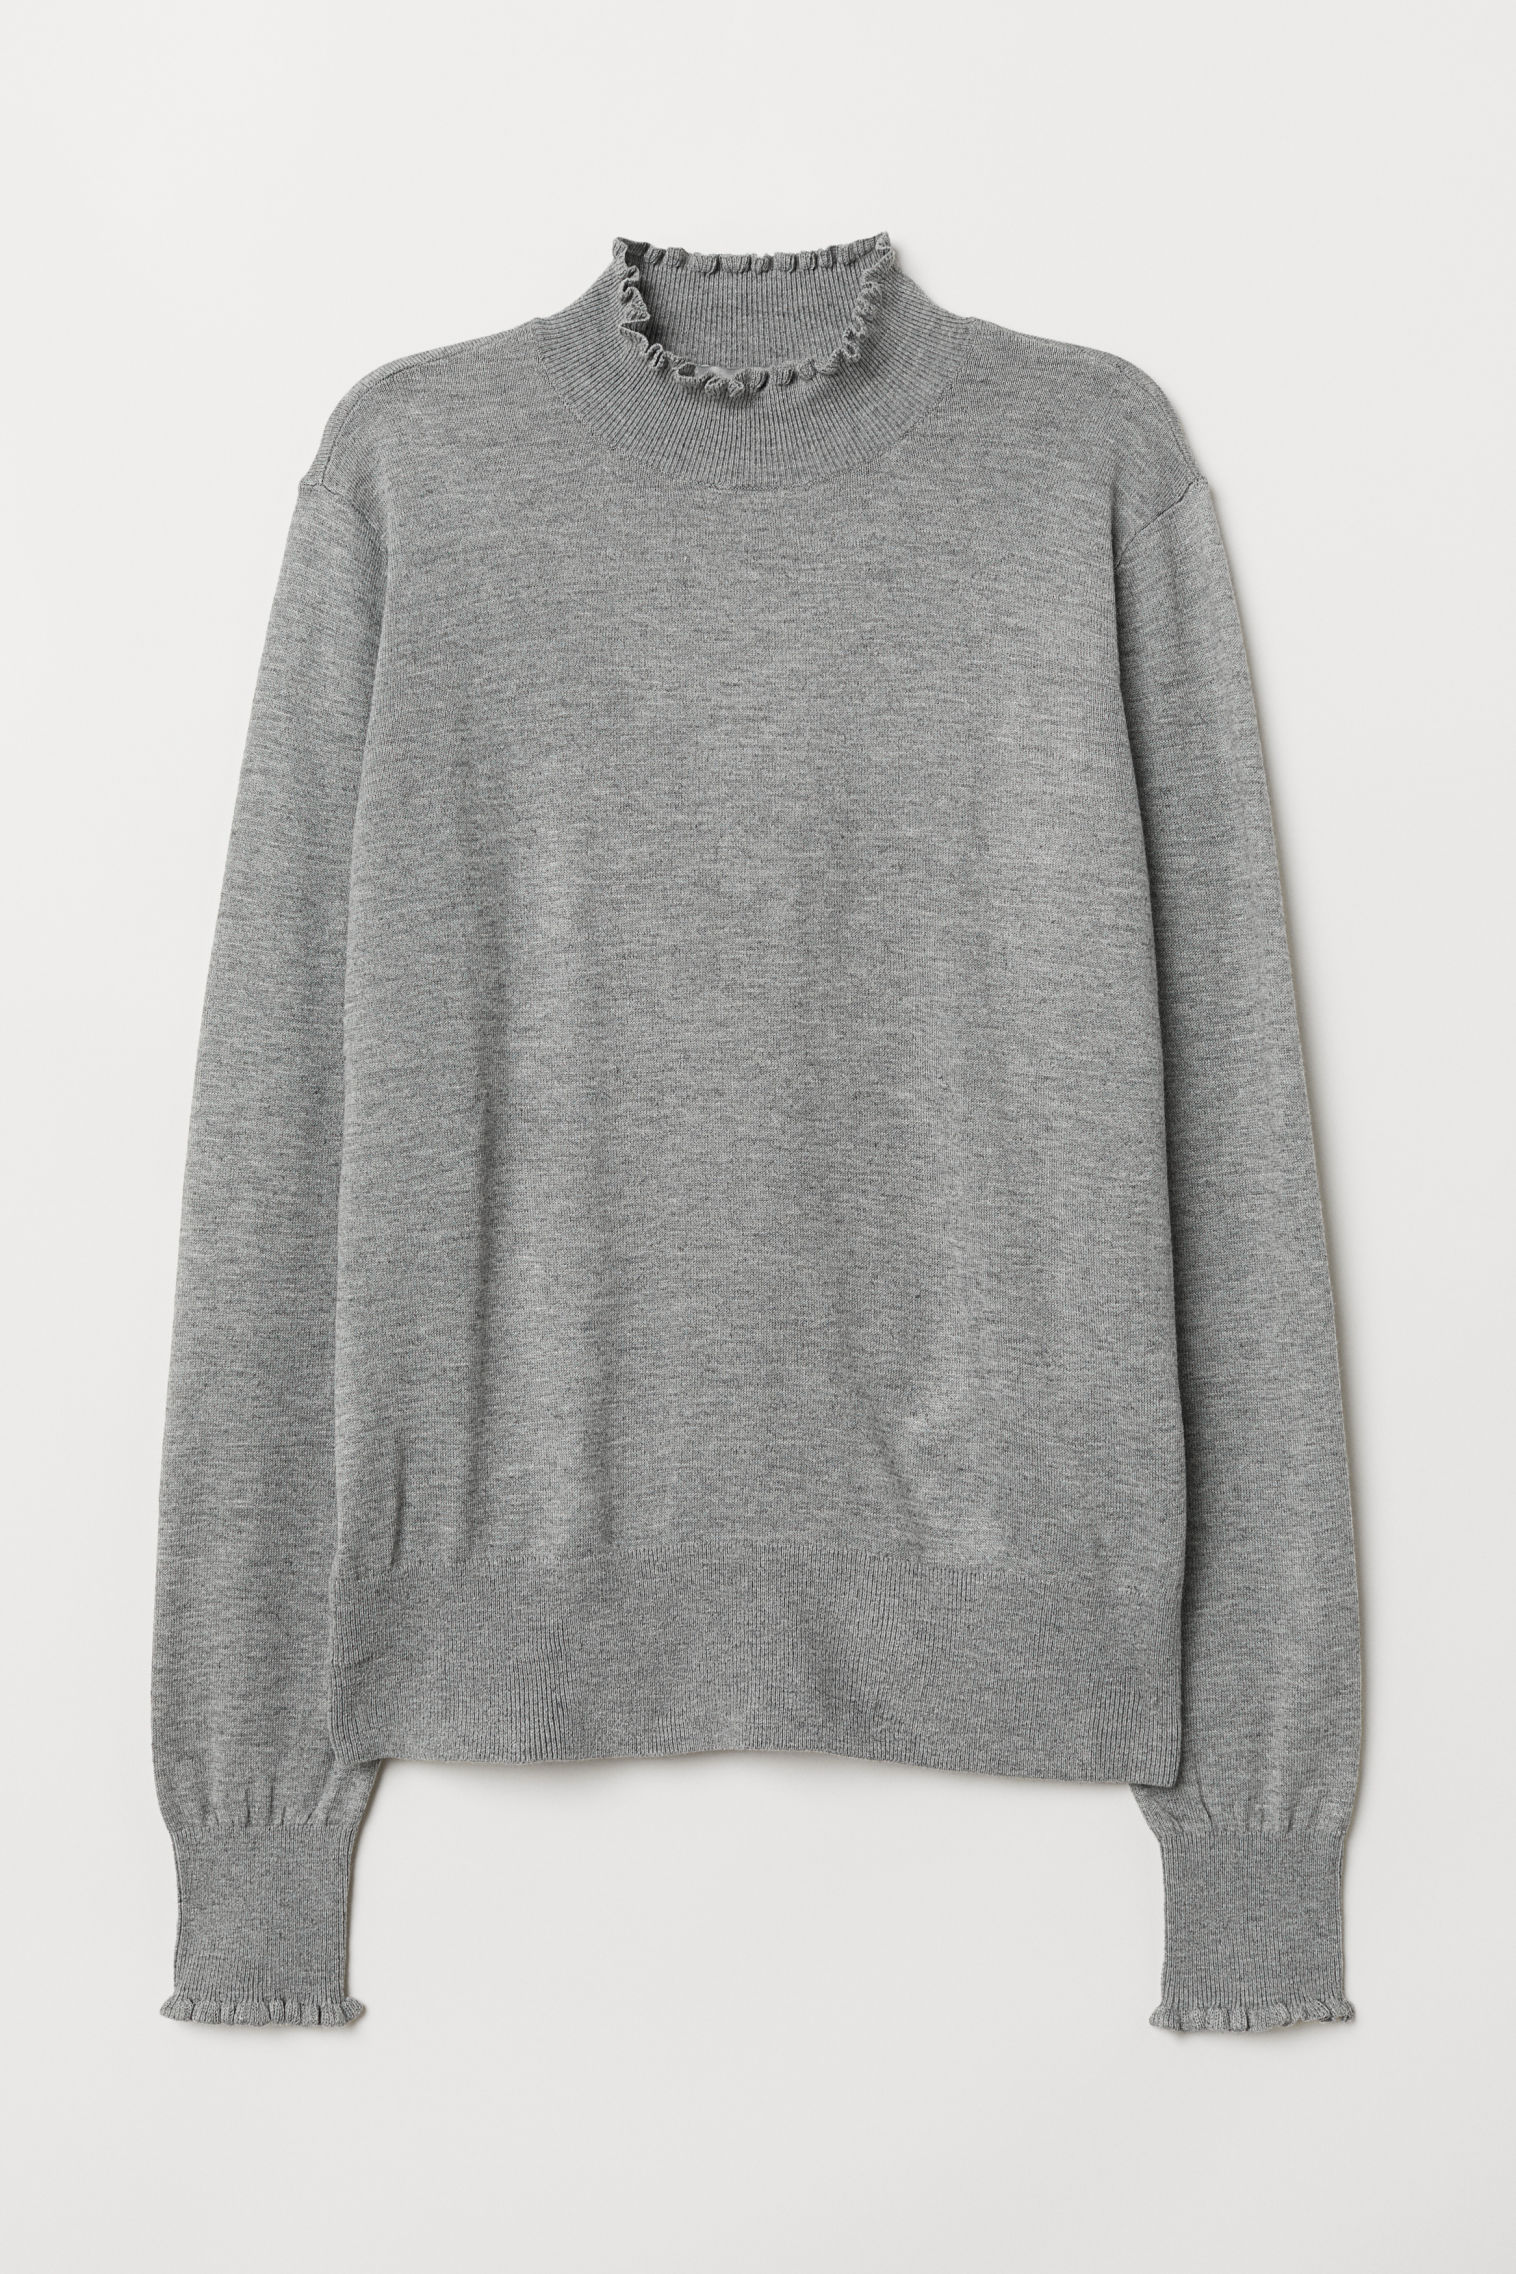 4c3dc82fb2d9c Turtleneck jumper  Turtleneck jumper